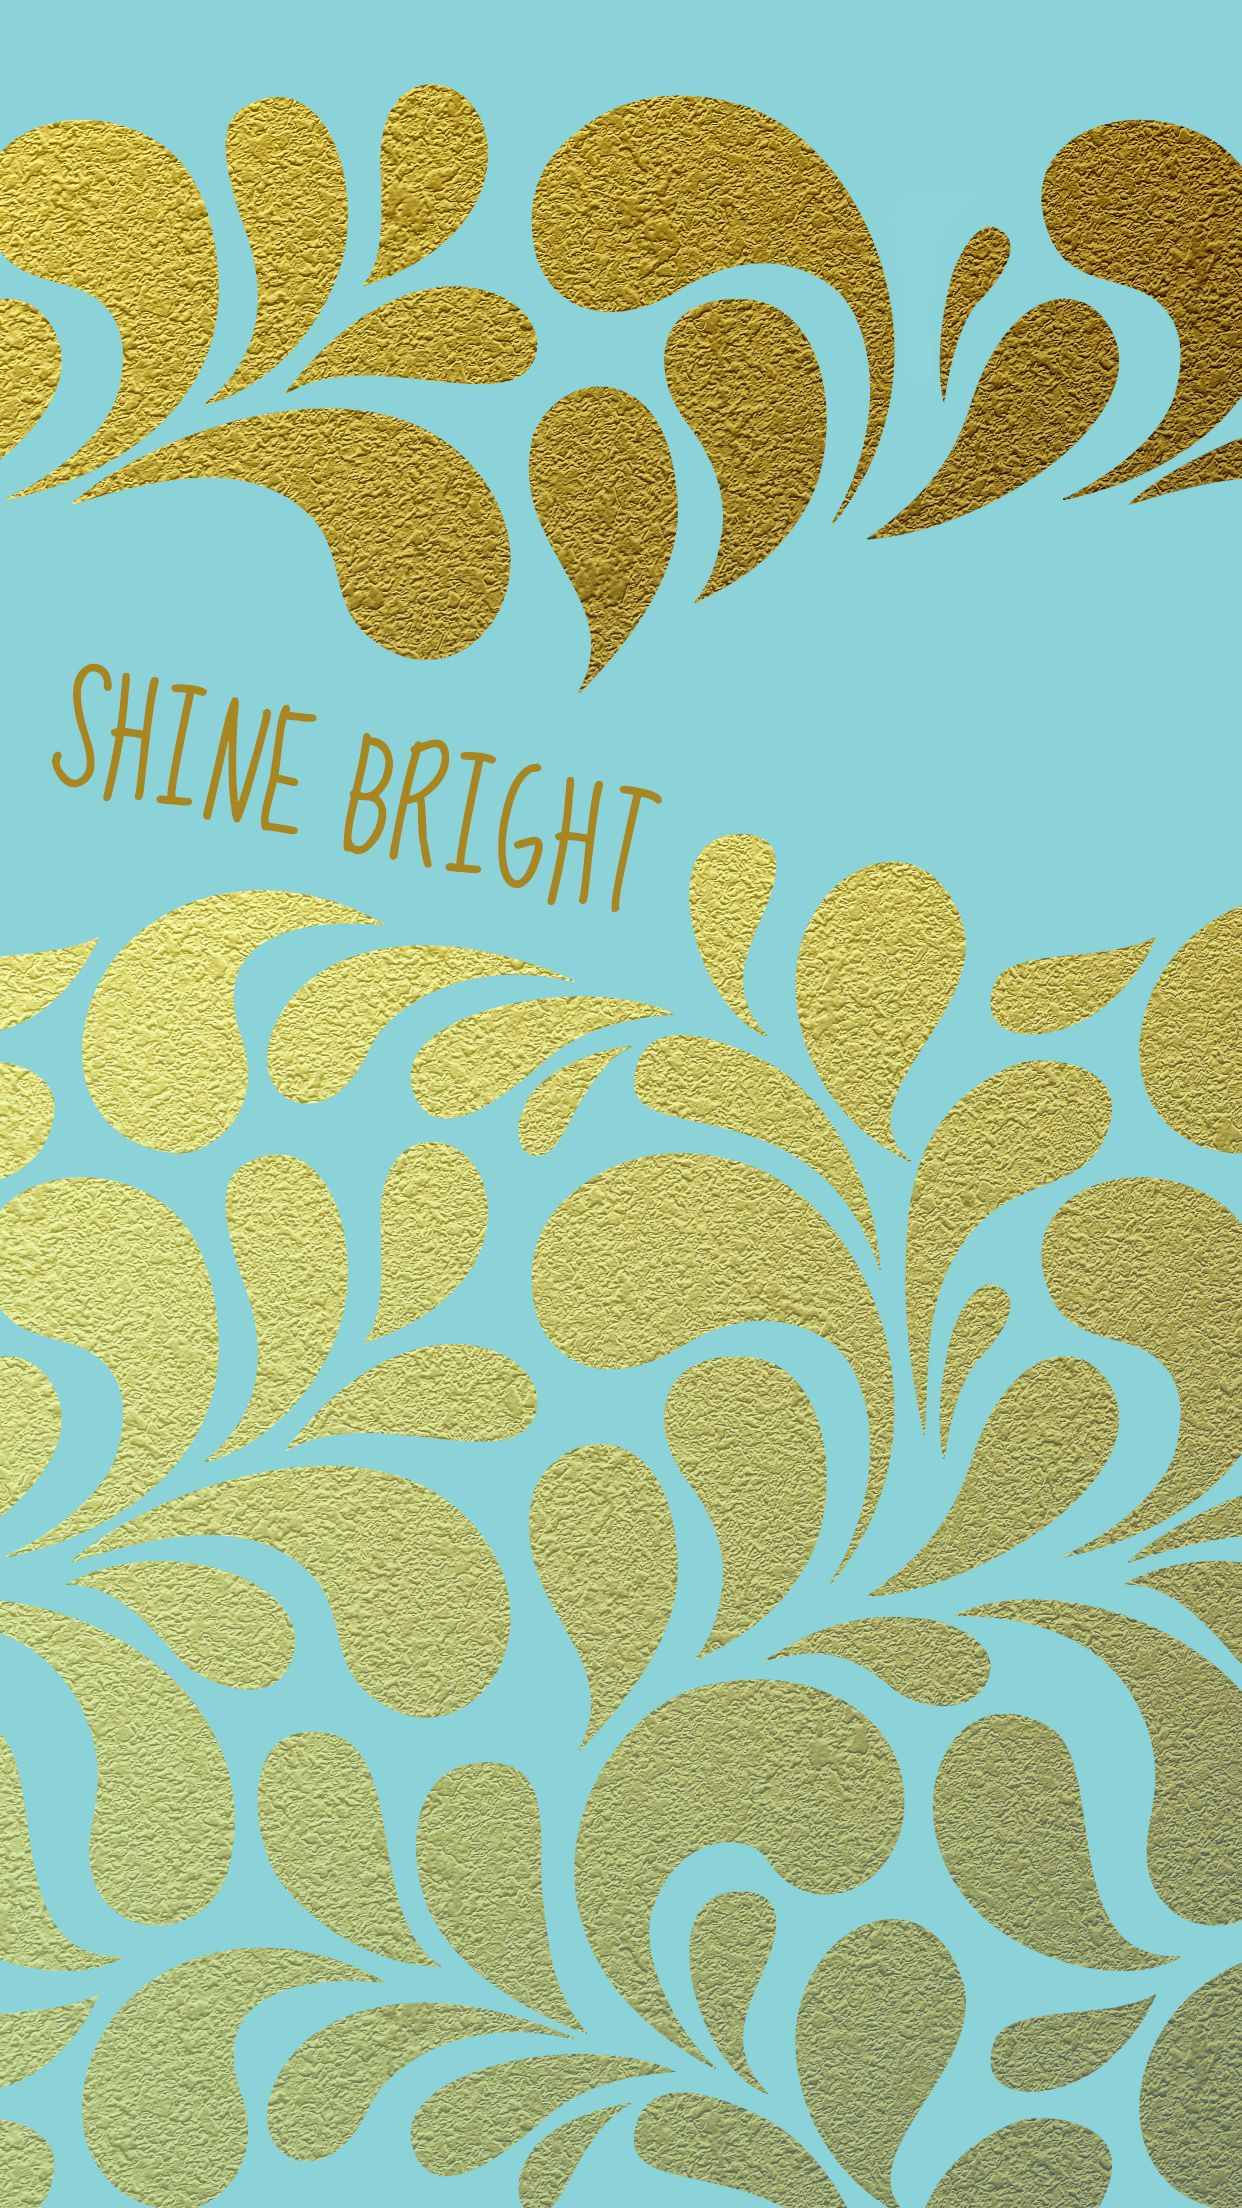 Ethnic iphone wallpaper - Shine Bright Tiffany Blue Gold Iphone Wallpaper Background